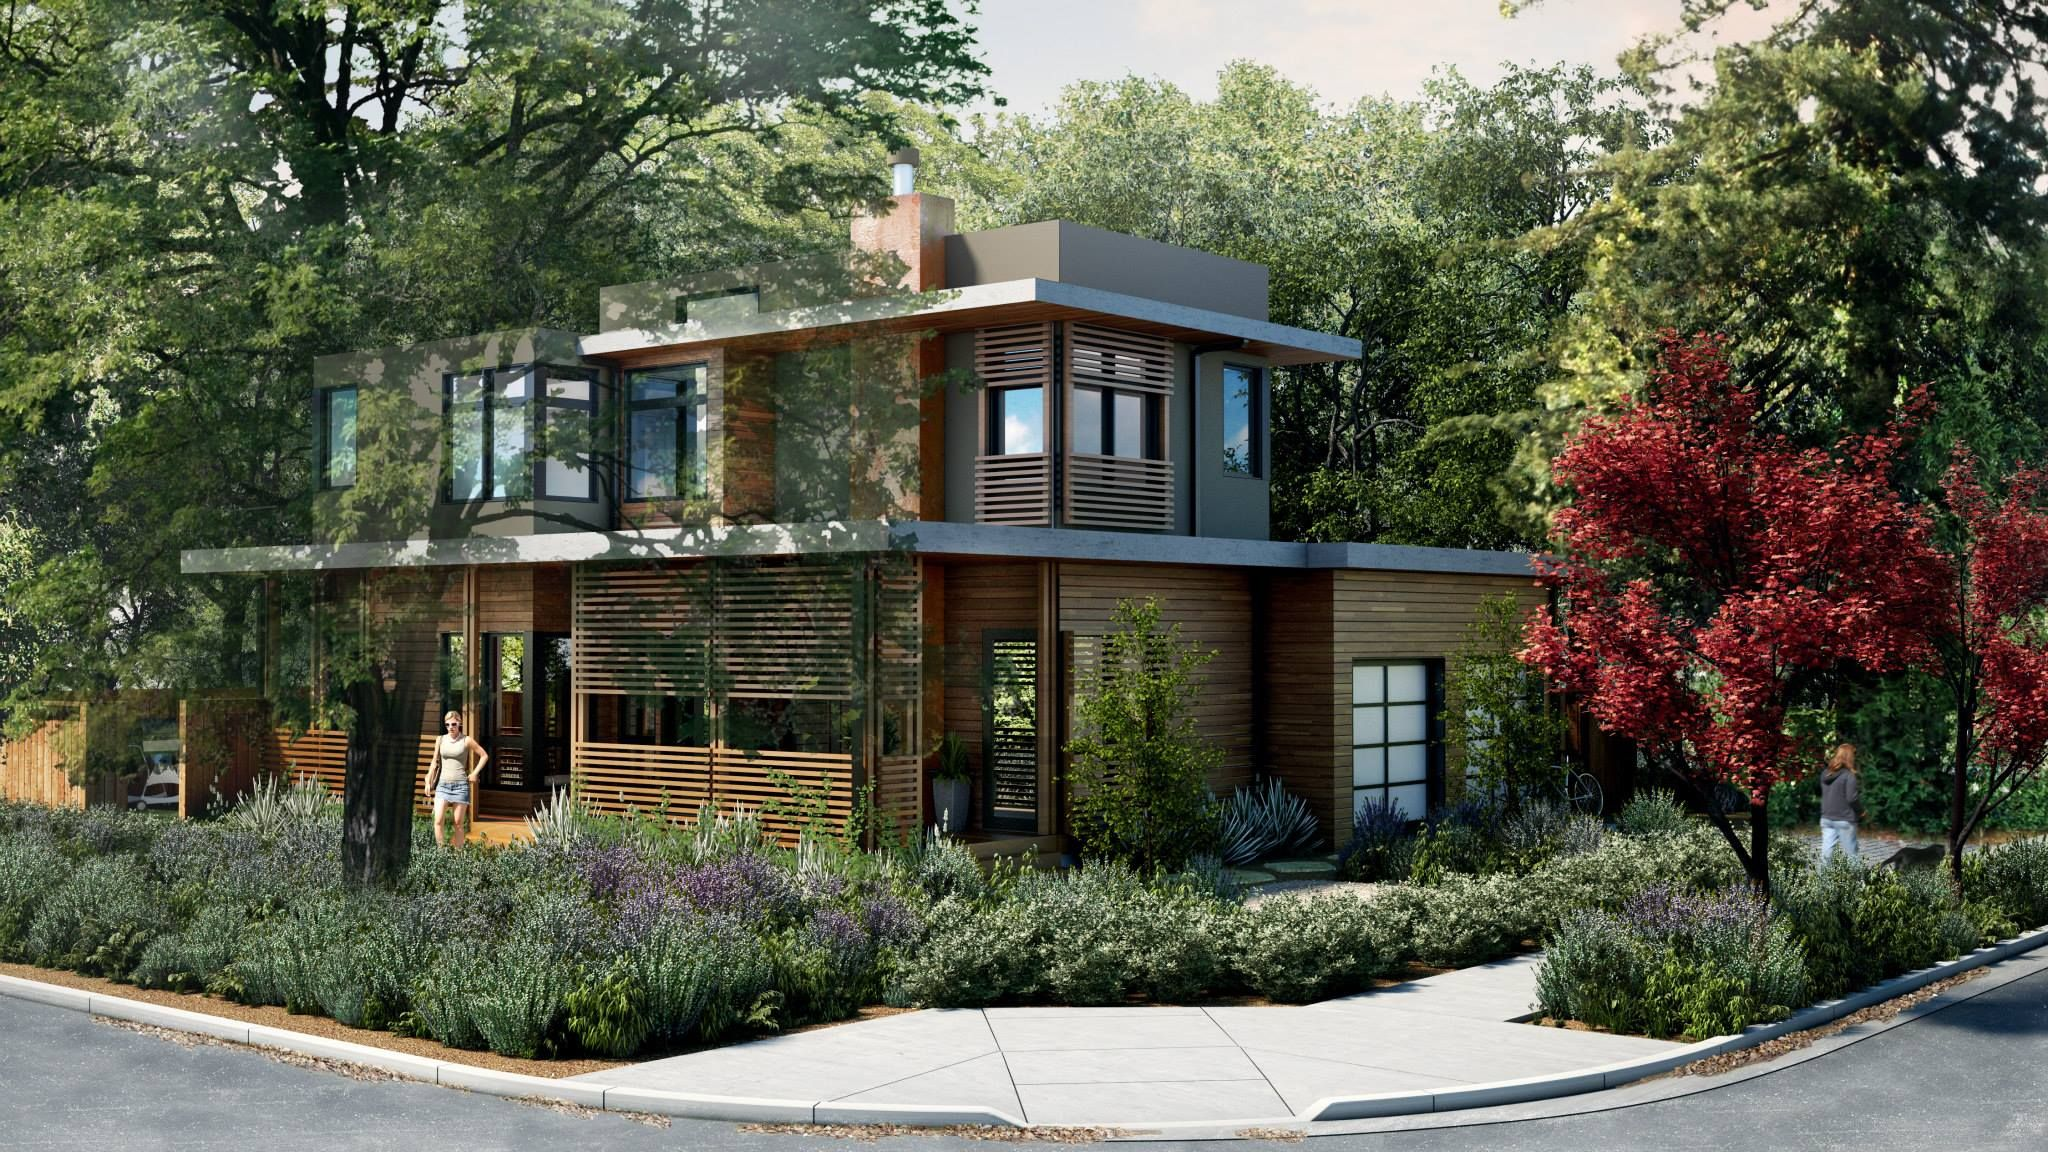 Modern Modular Home In San Francisco Bay Area Designed By Clever Homes Presented By Toby Long Modern Modular Homes Modular Homes Home Builders